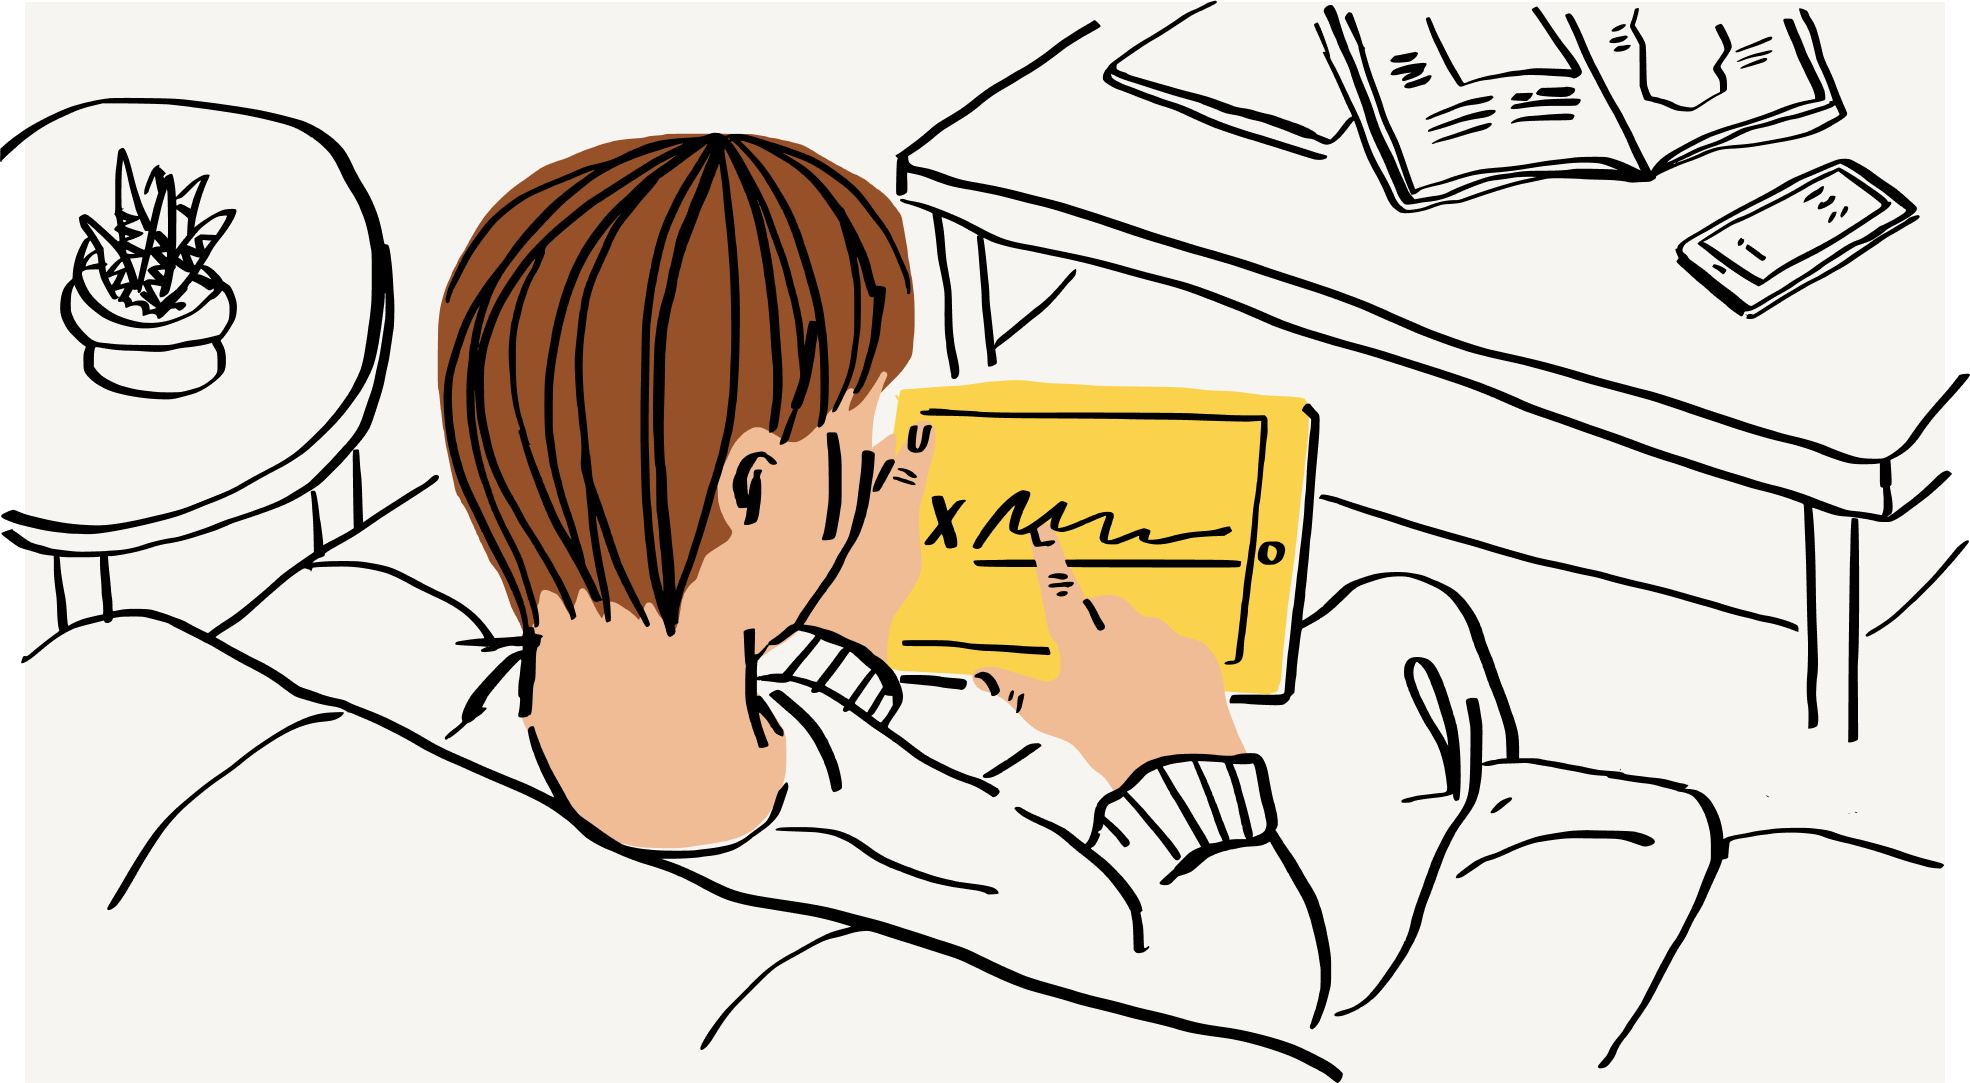 An illustration of a person electronically signing a document on a tablet